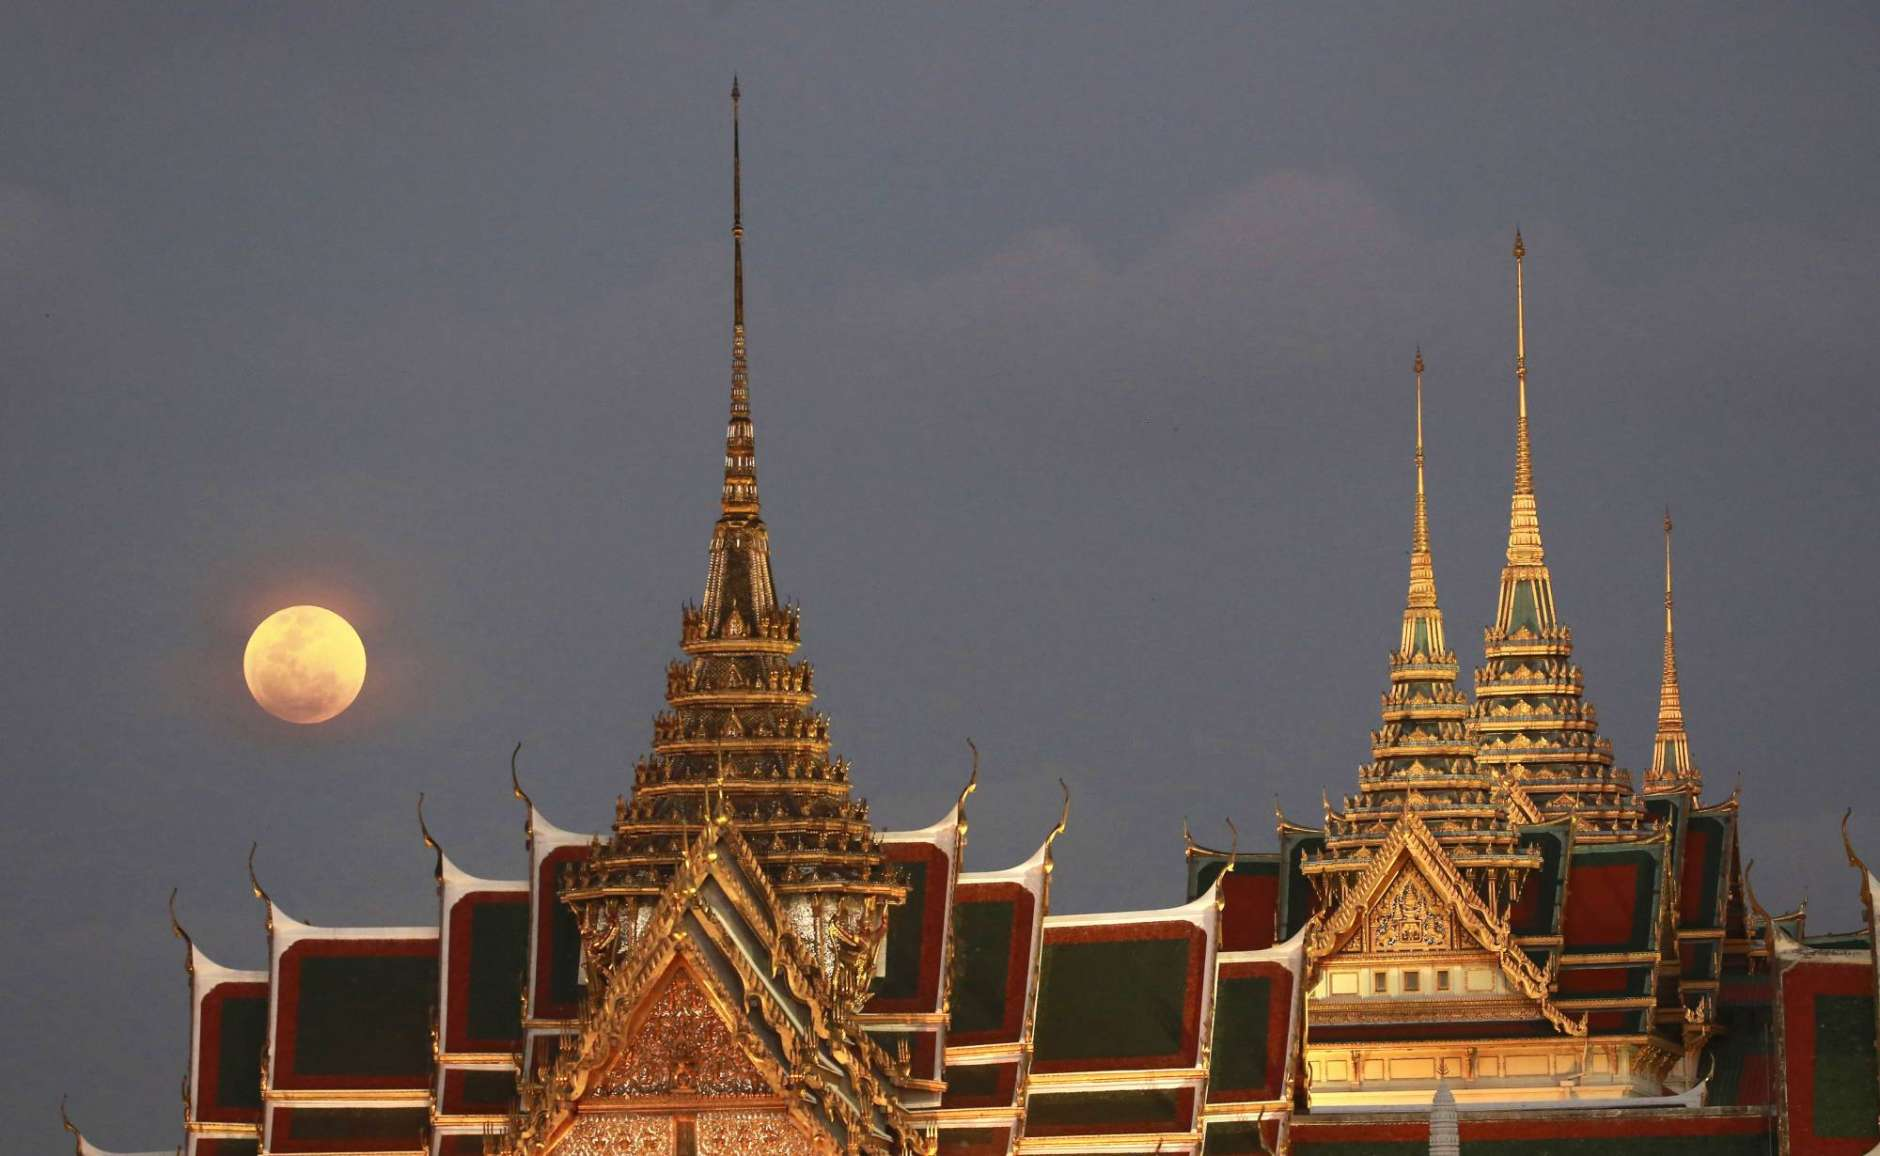 In this Jan. 31, 2018 file photo,  a full moon rises behind the Grand Palace in Bangkok, Thailand. The moon is putting on a rare cosmic show. It's the first time in 35 years a blue moon has synced up with a supermoon and a total lunar eclipse. (AP Photo/Sakchai Lalit)